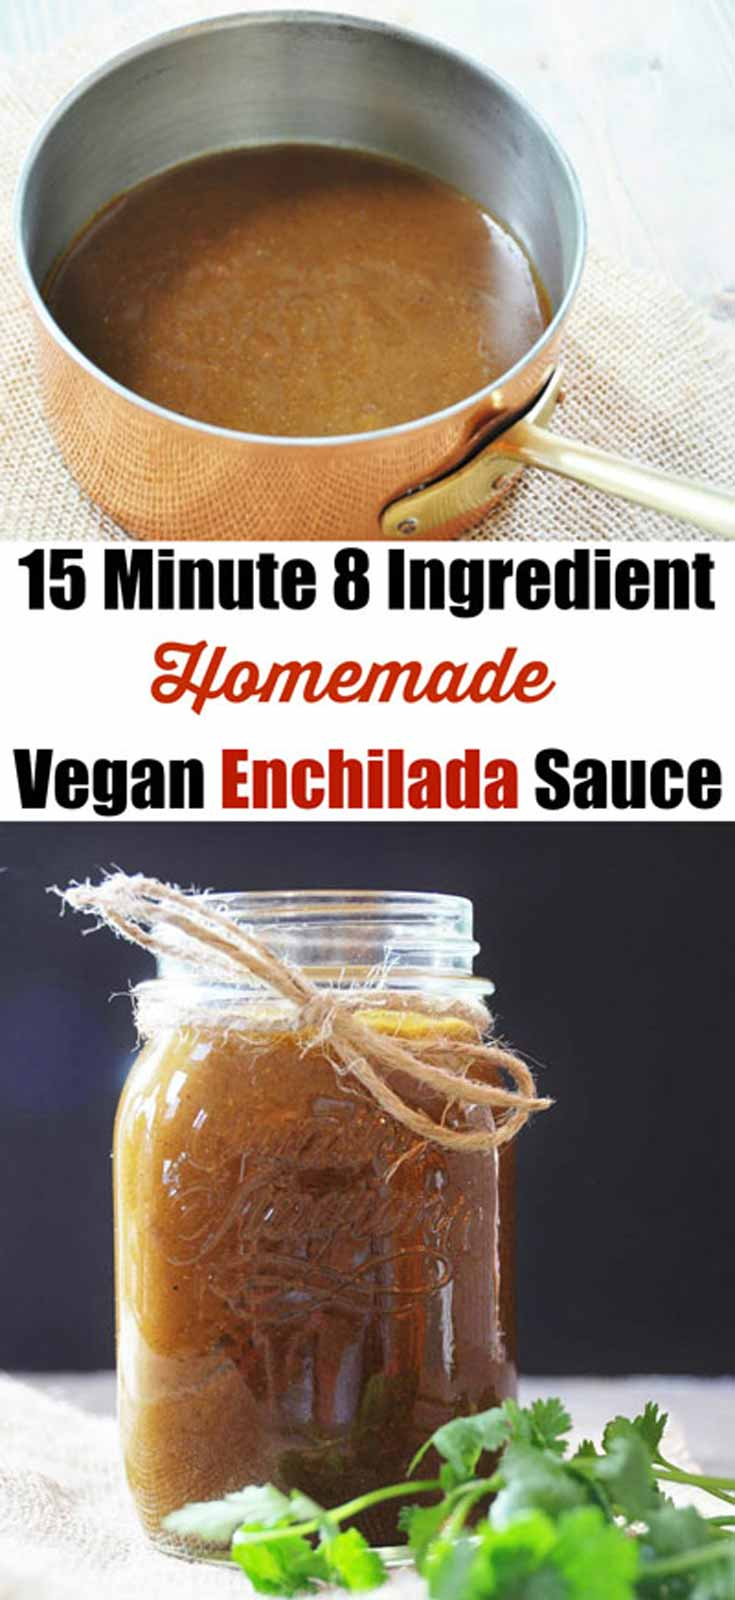 Homemade Vegan Enchilada Sauce! Only 15 minutes and 8 ingredients!